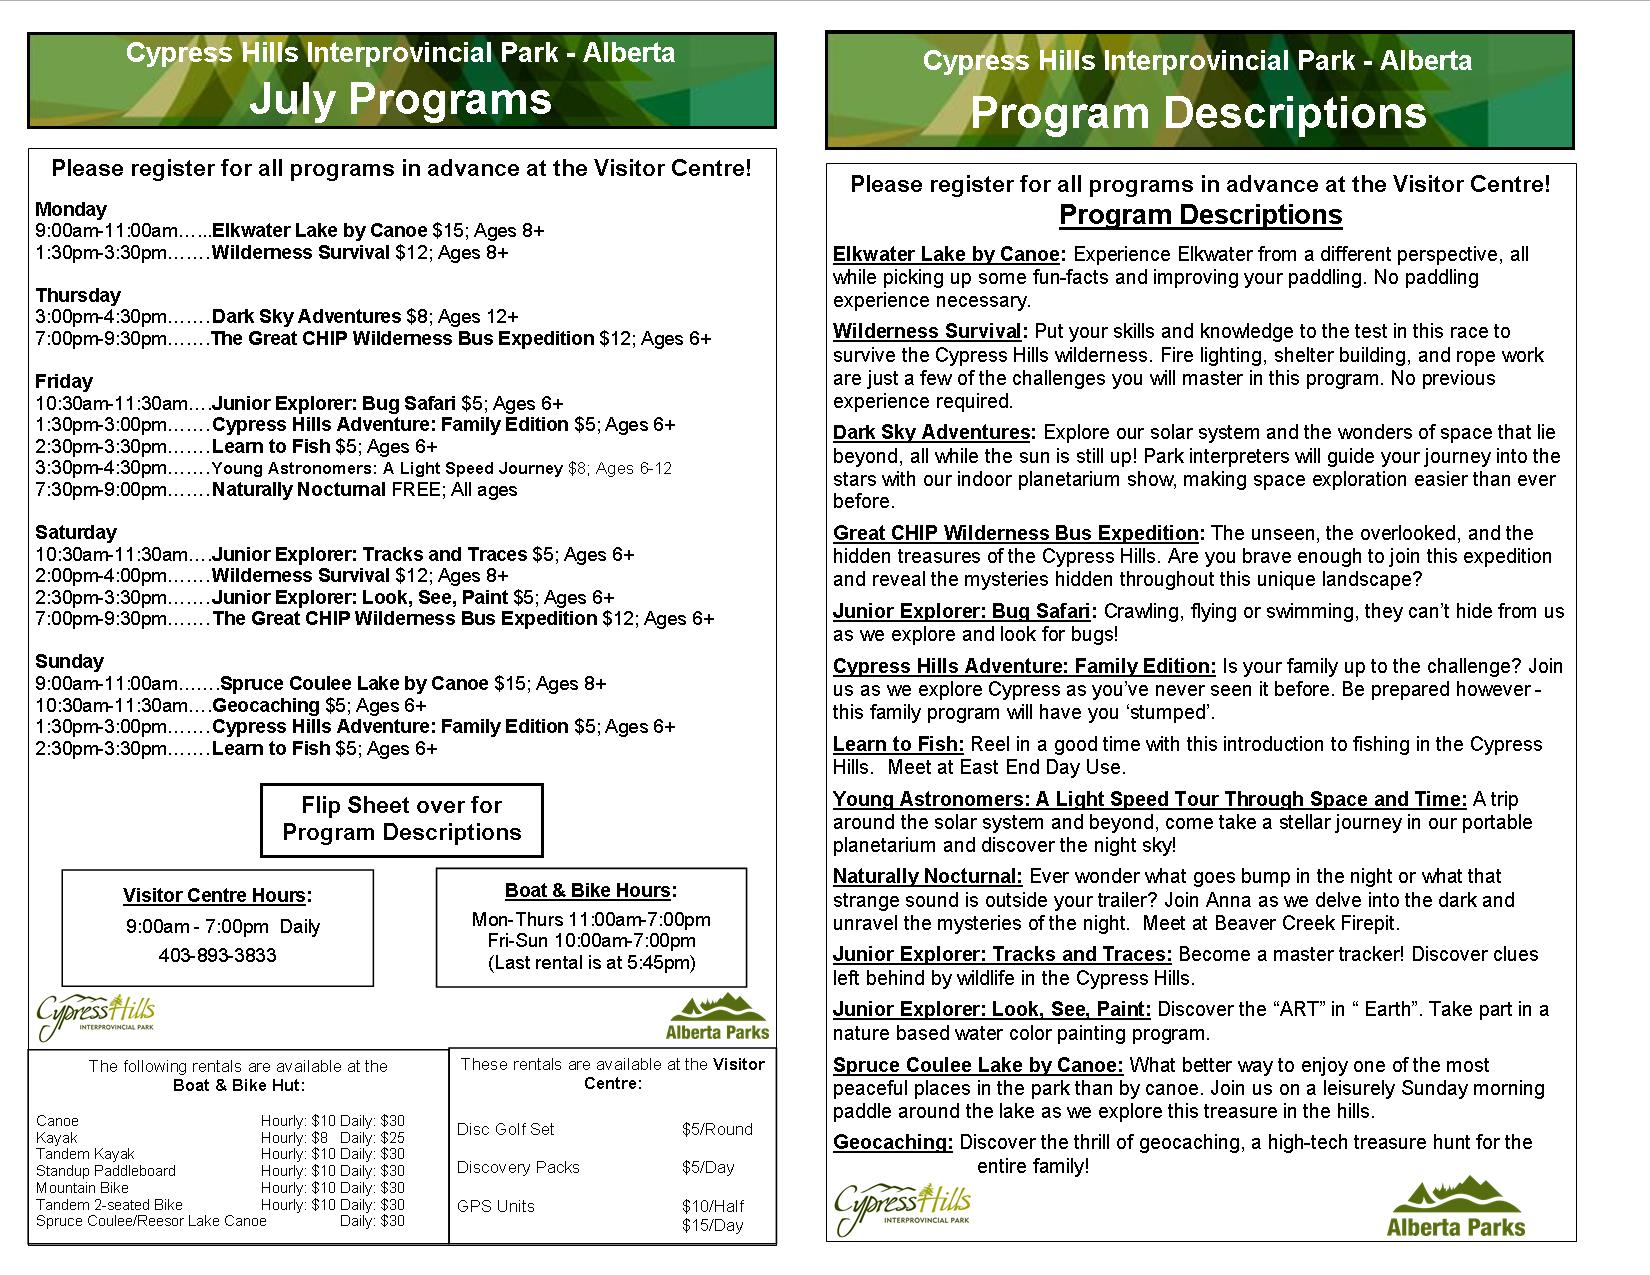 Fun Programs for July and August